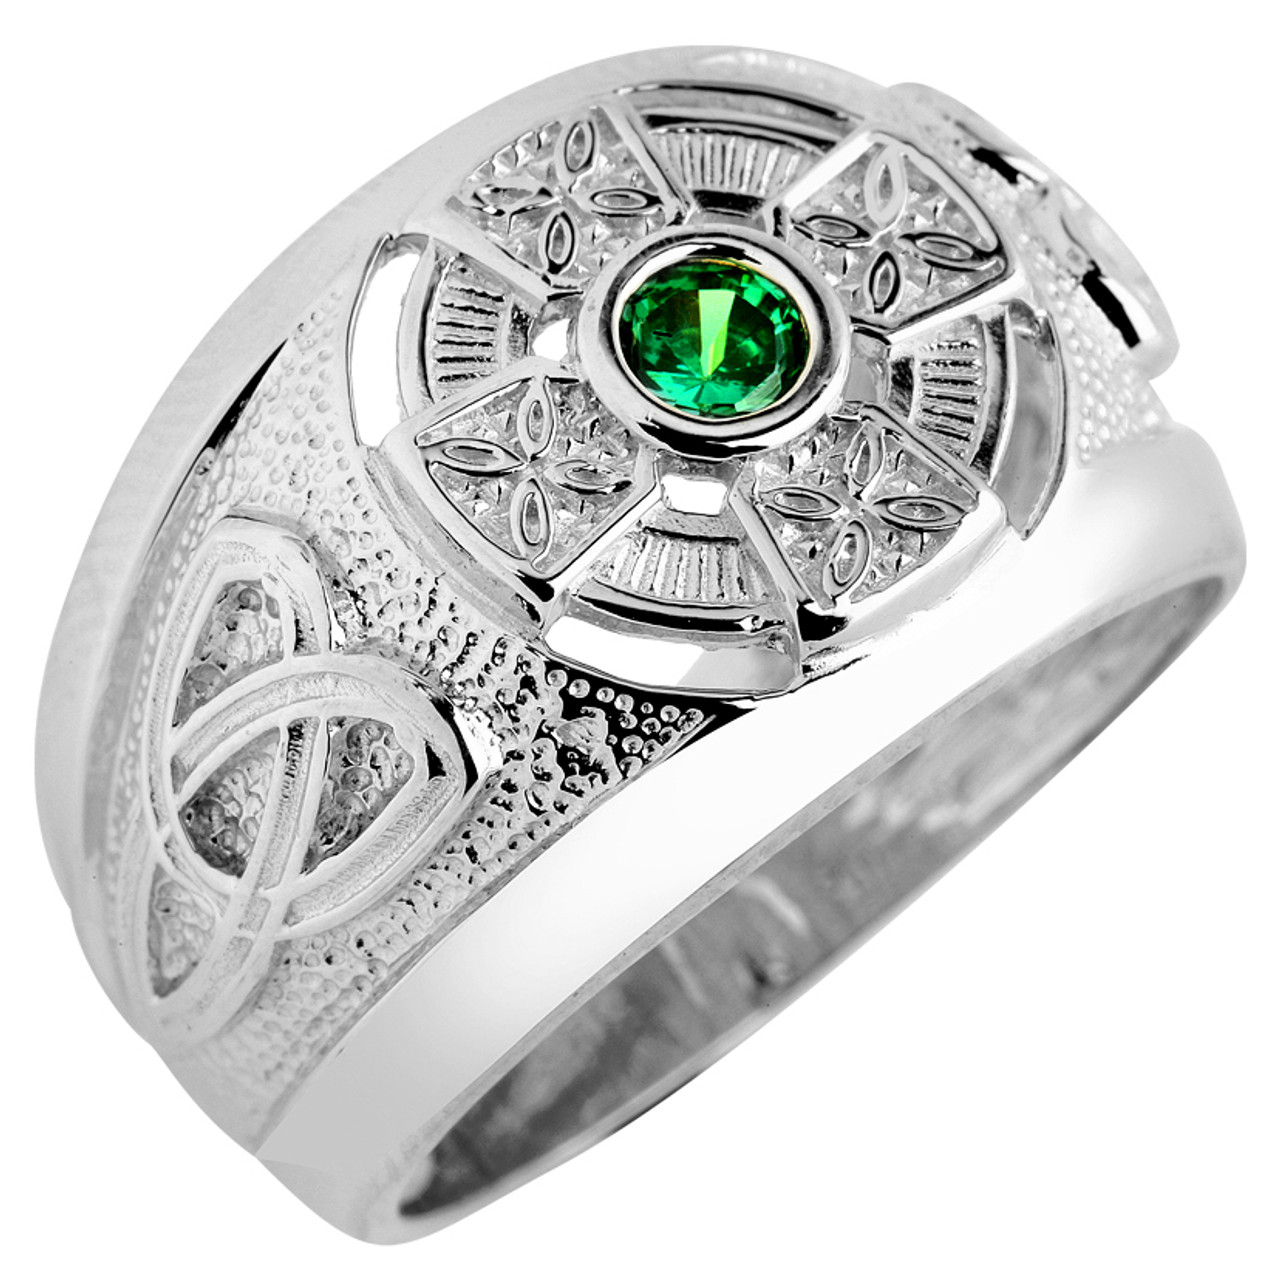 Men s White Gold Celtic Cross Ring with CZ Emerald